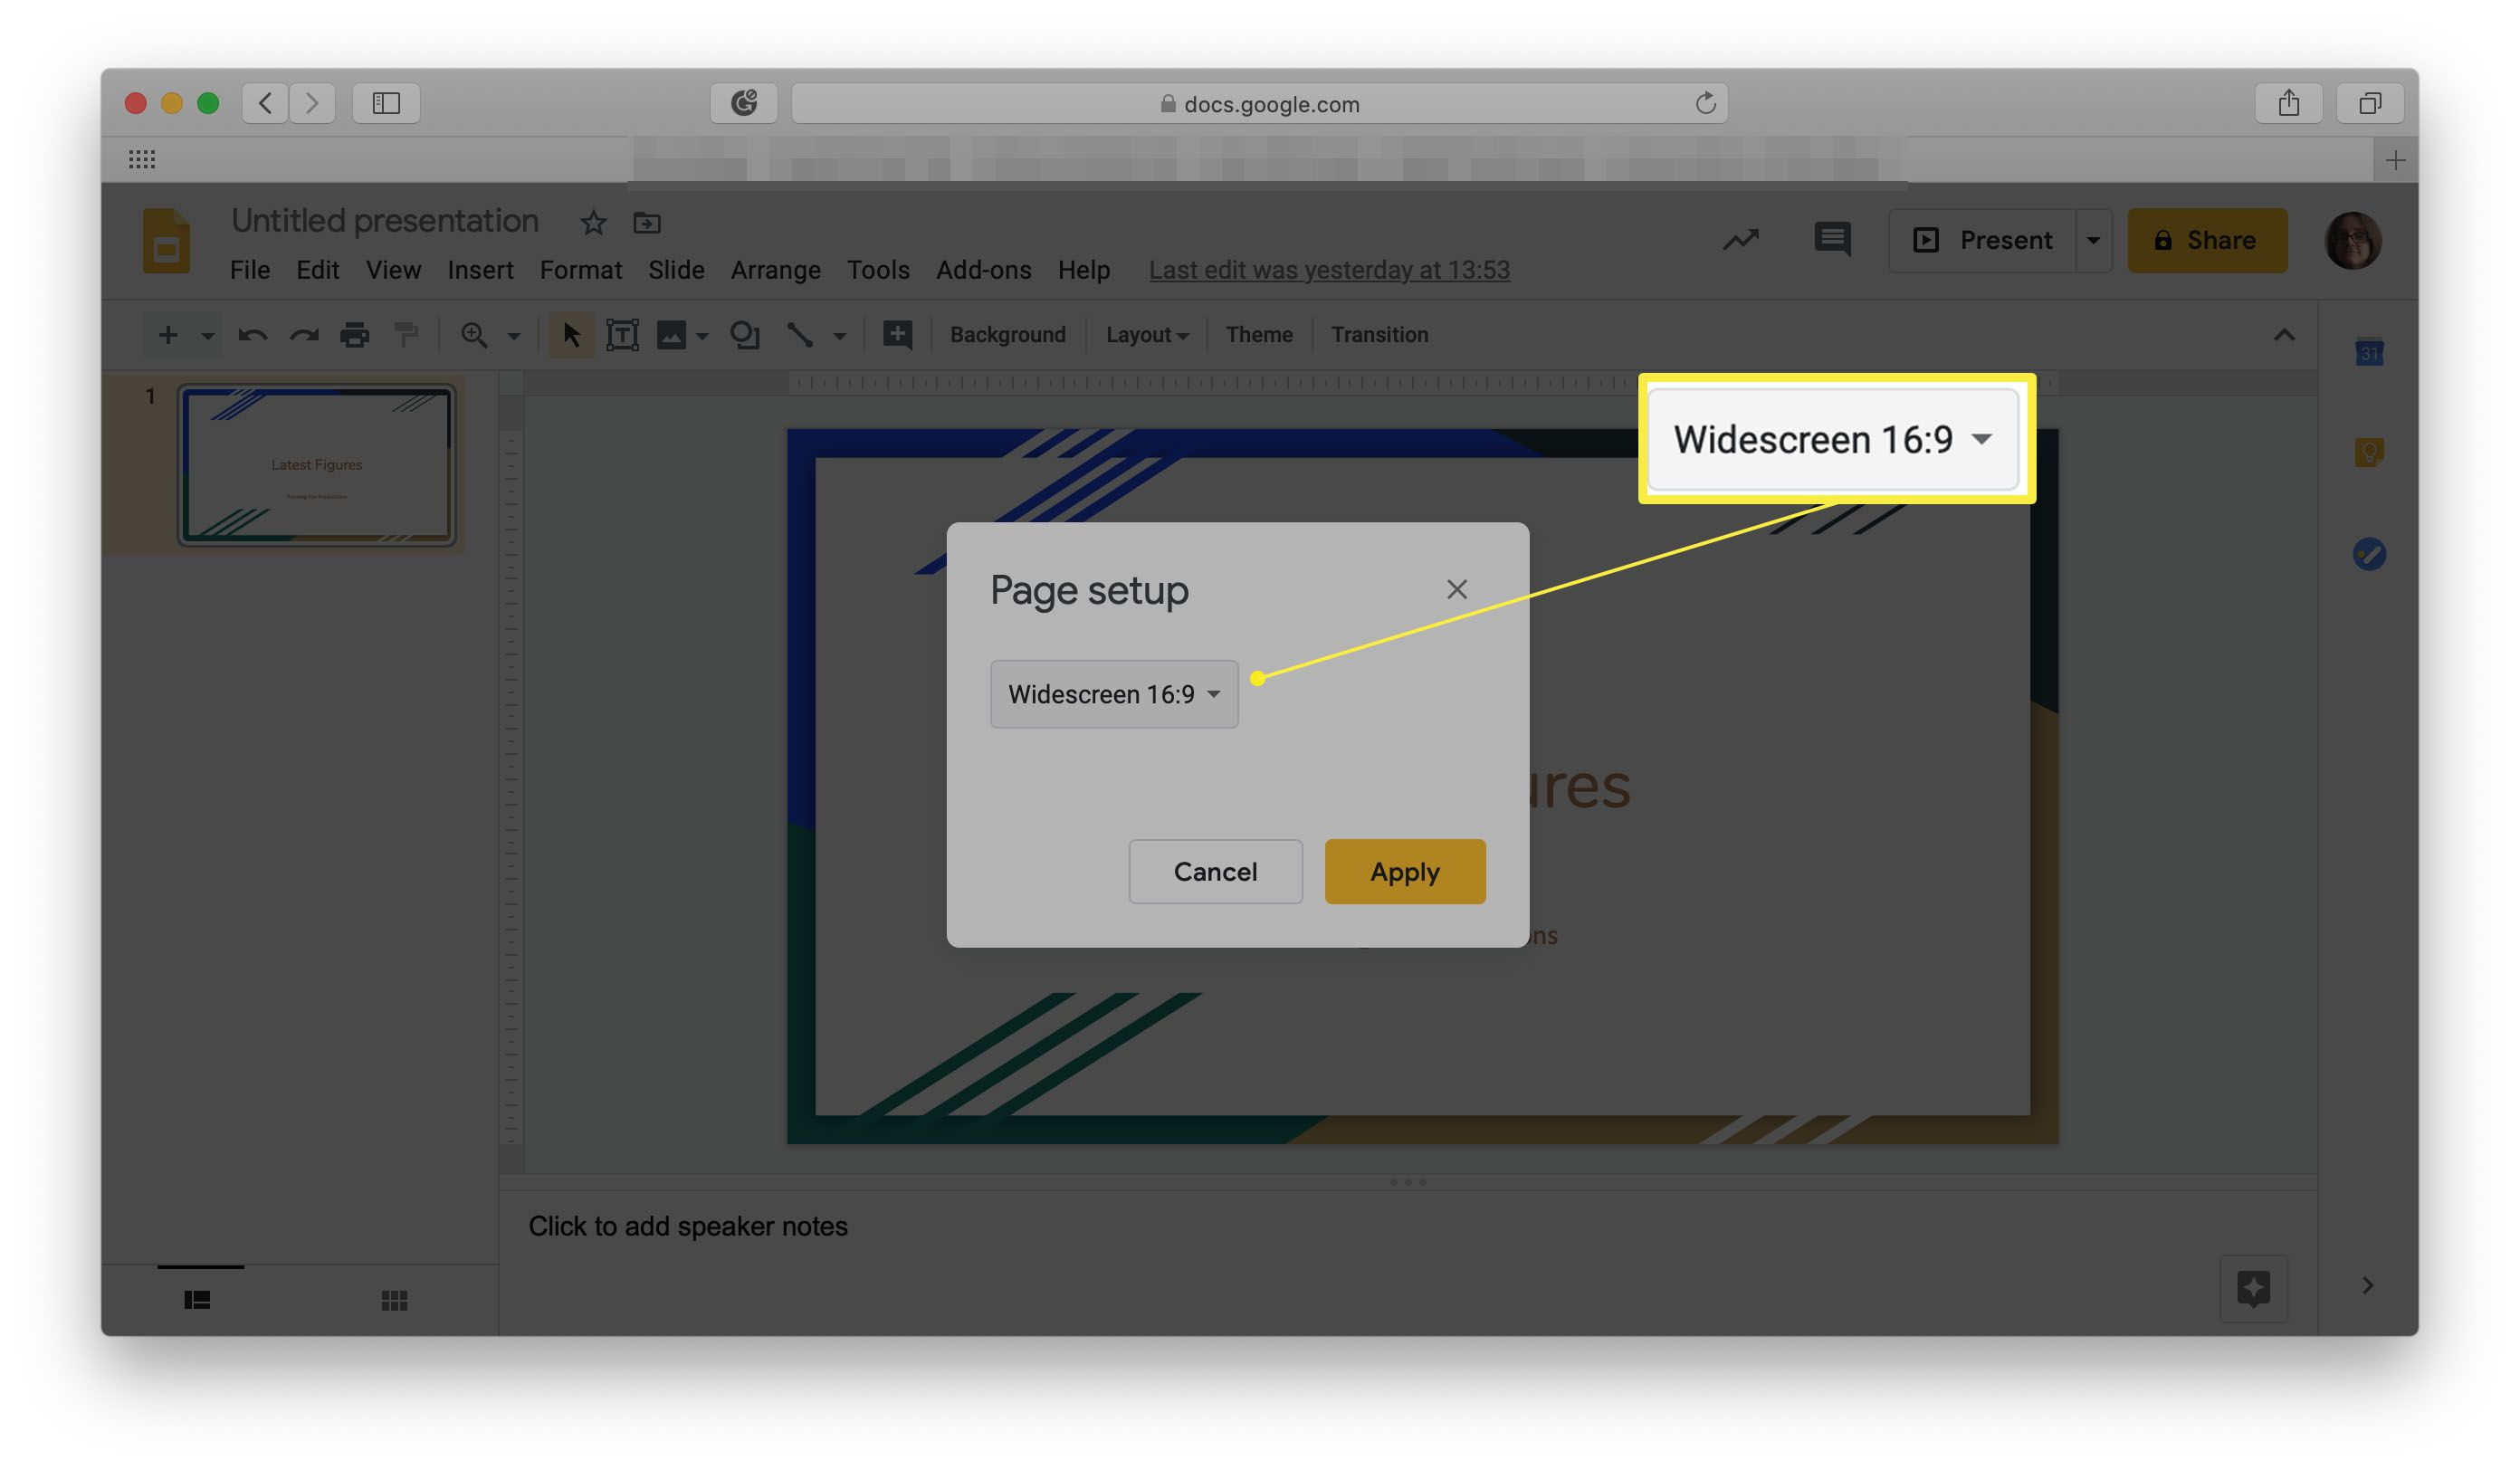 Google Slides with Page setup choices highlighted